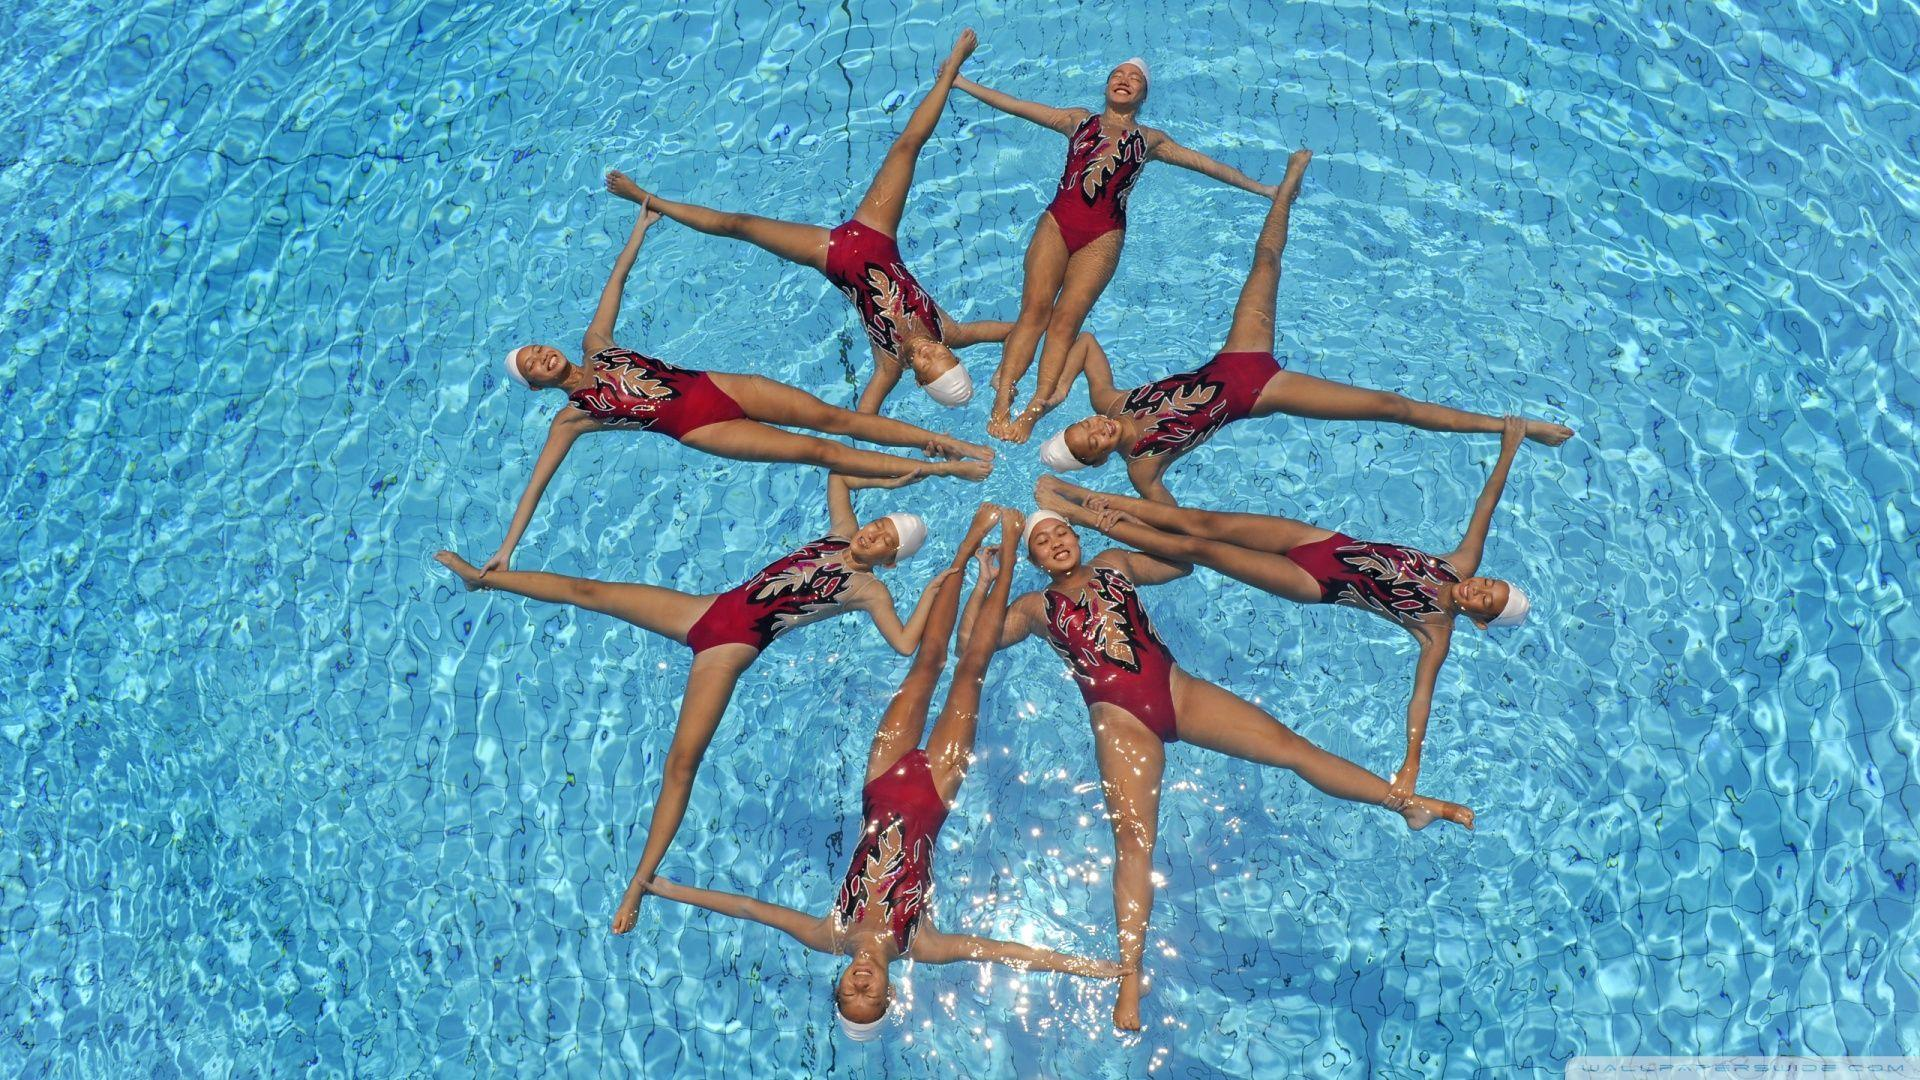 Synchronized Swimming HD desktop wallpapers : Widescreen : High